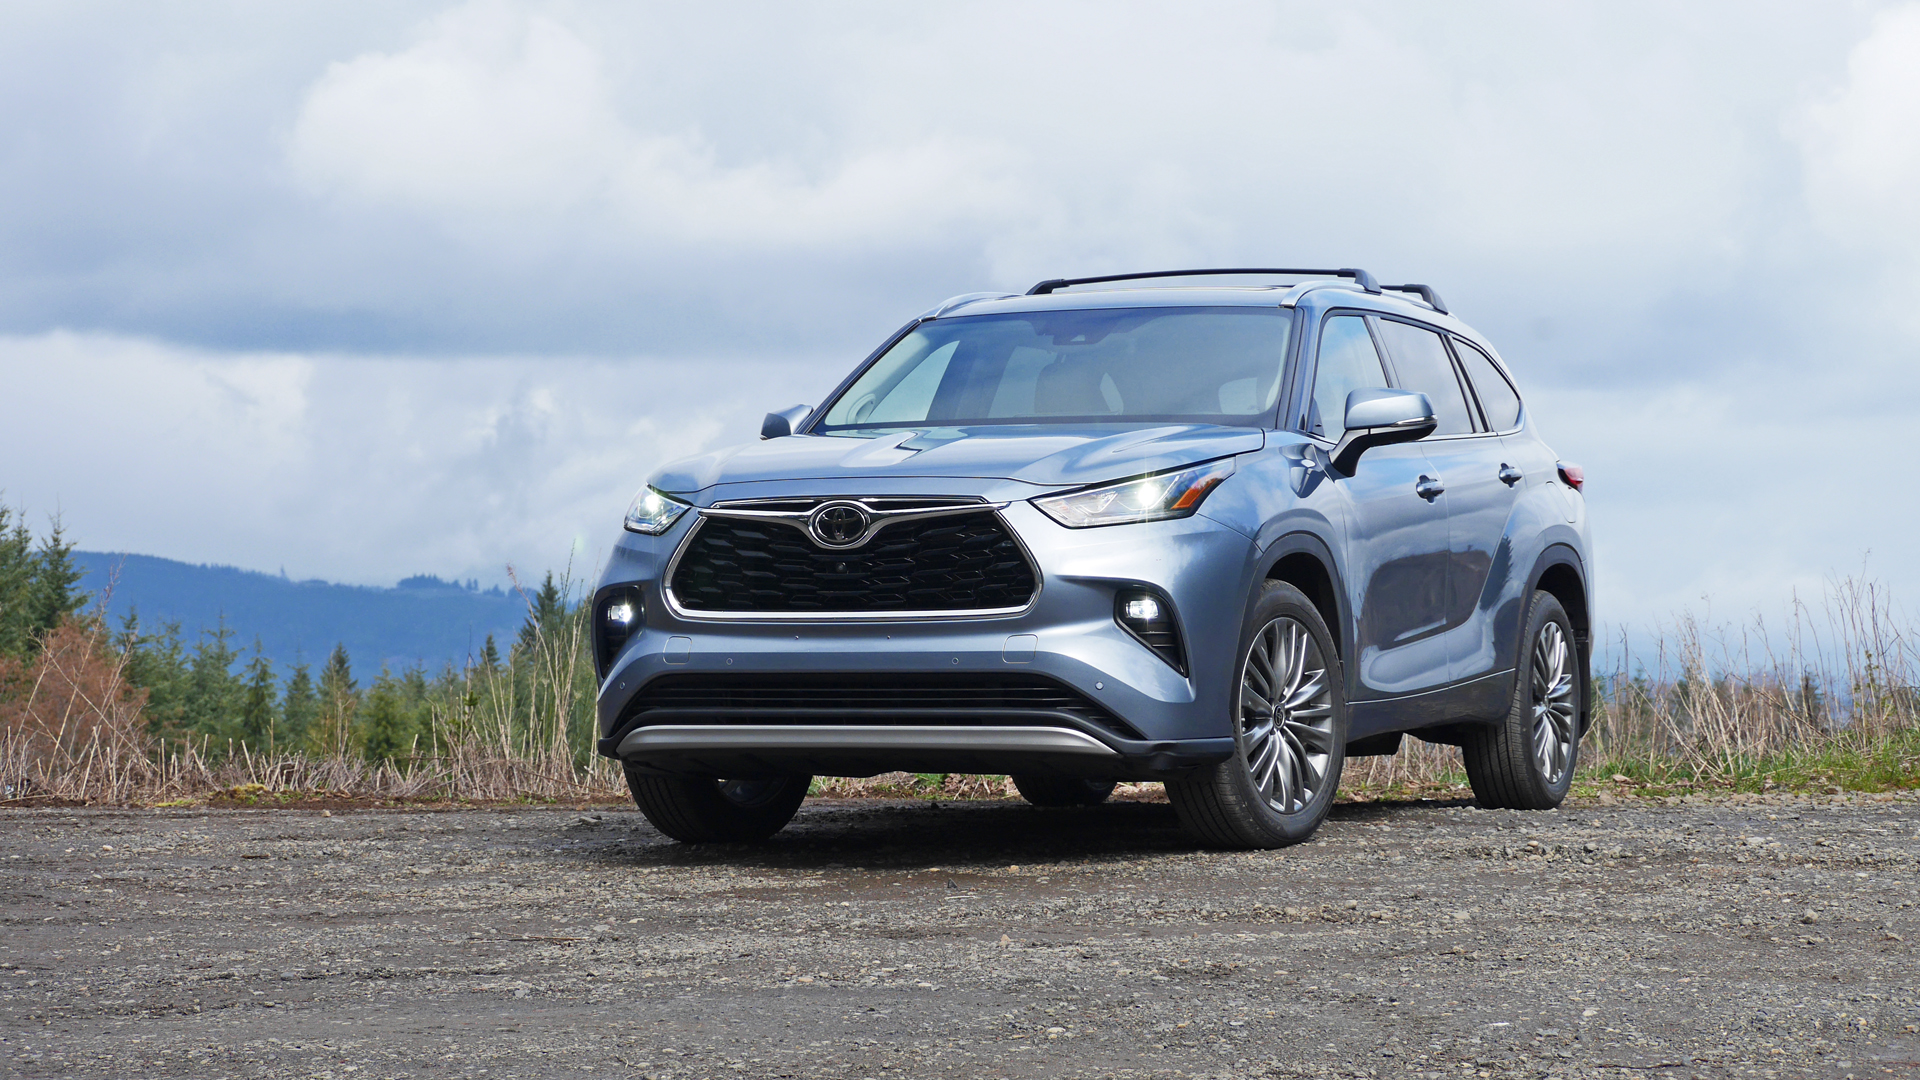 2021 toyota highlander review | price, specs, features and